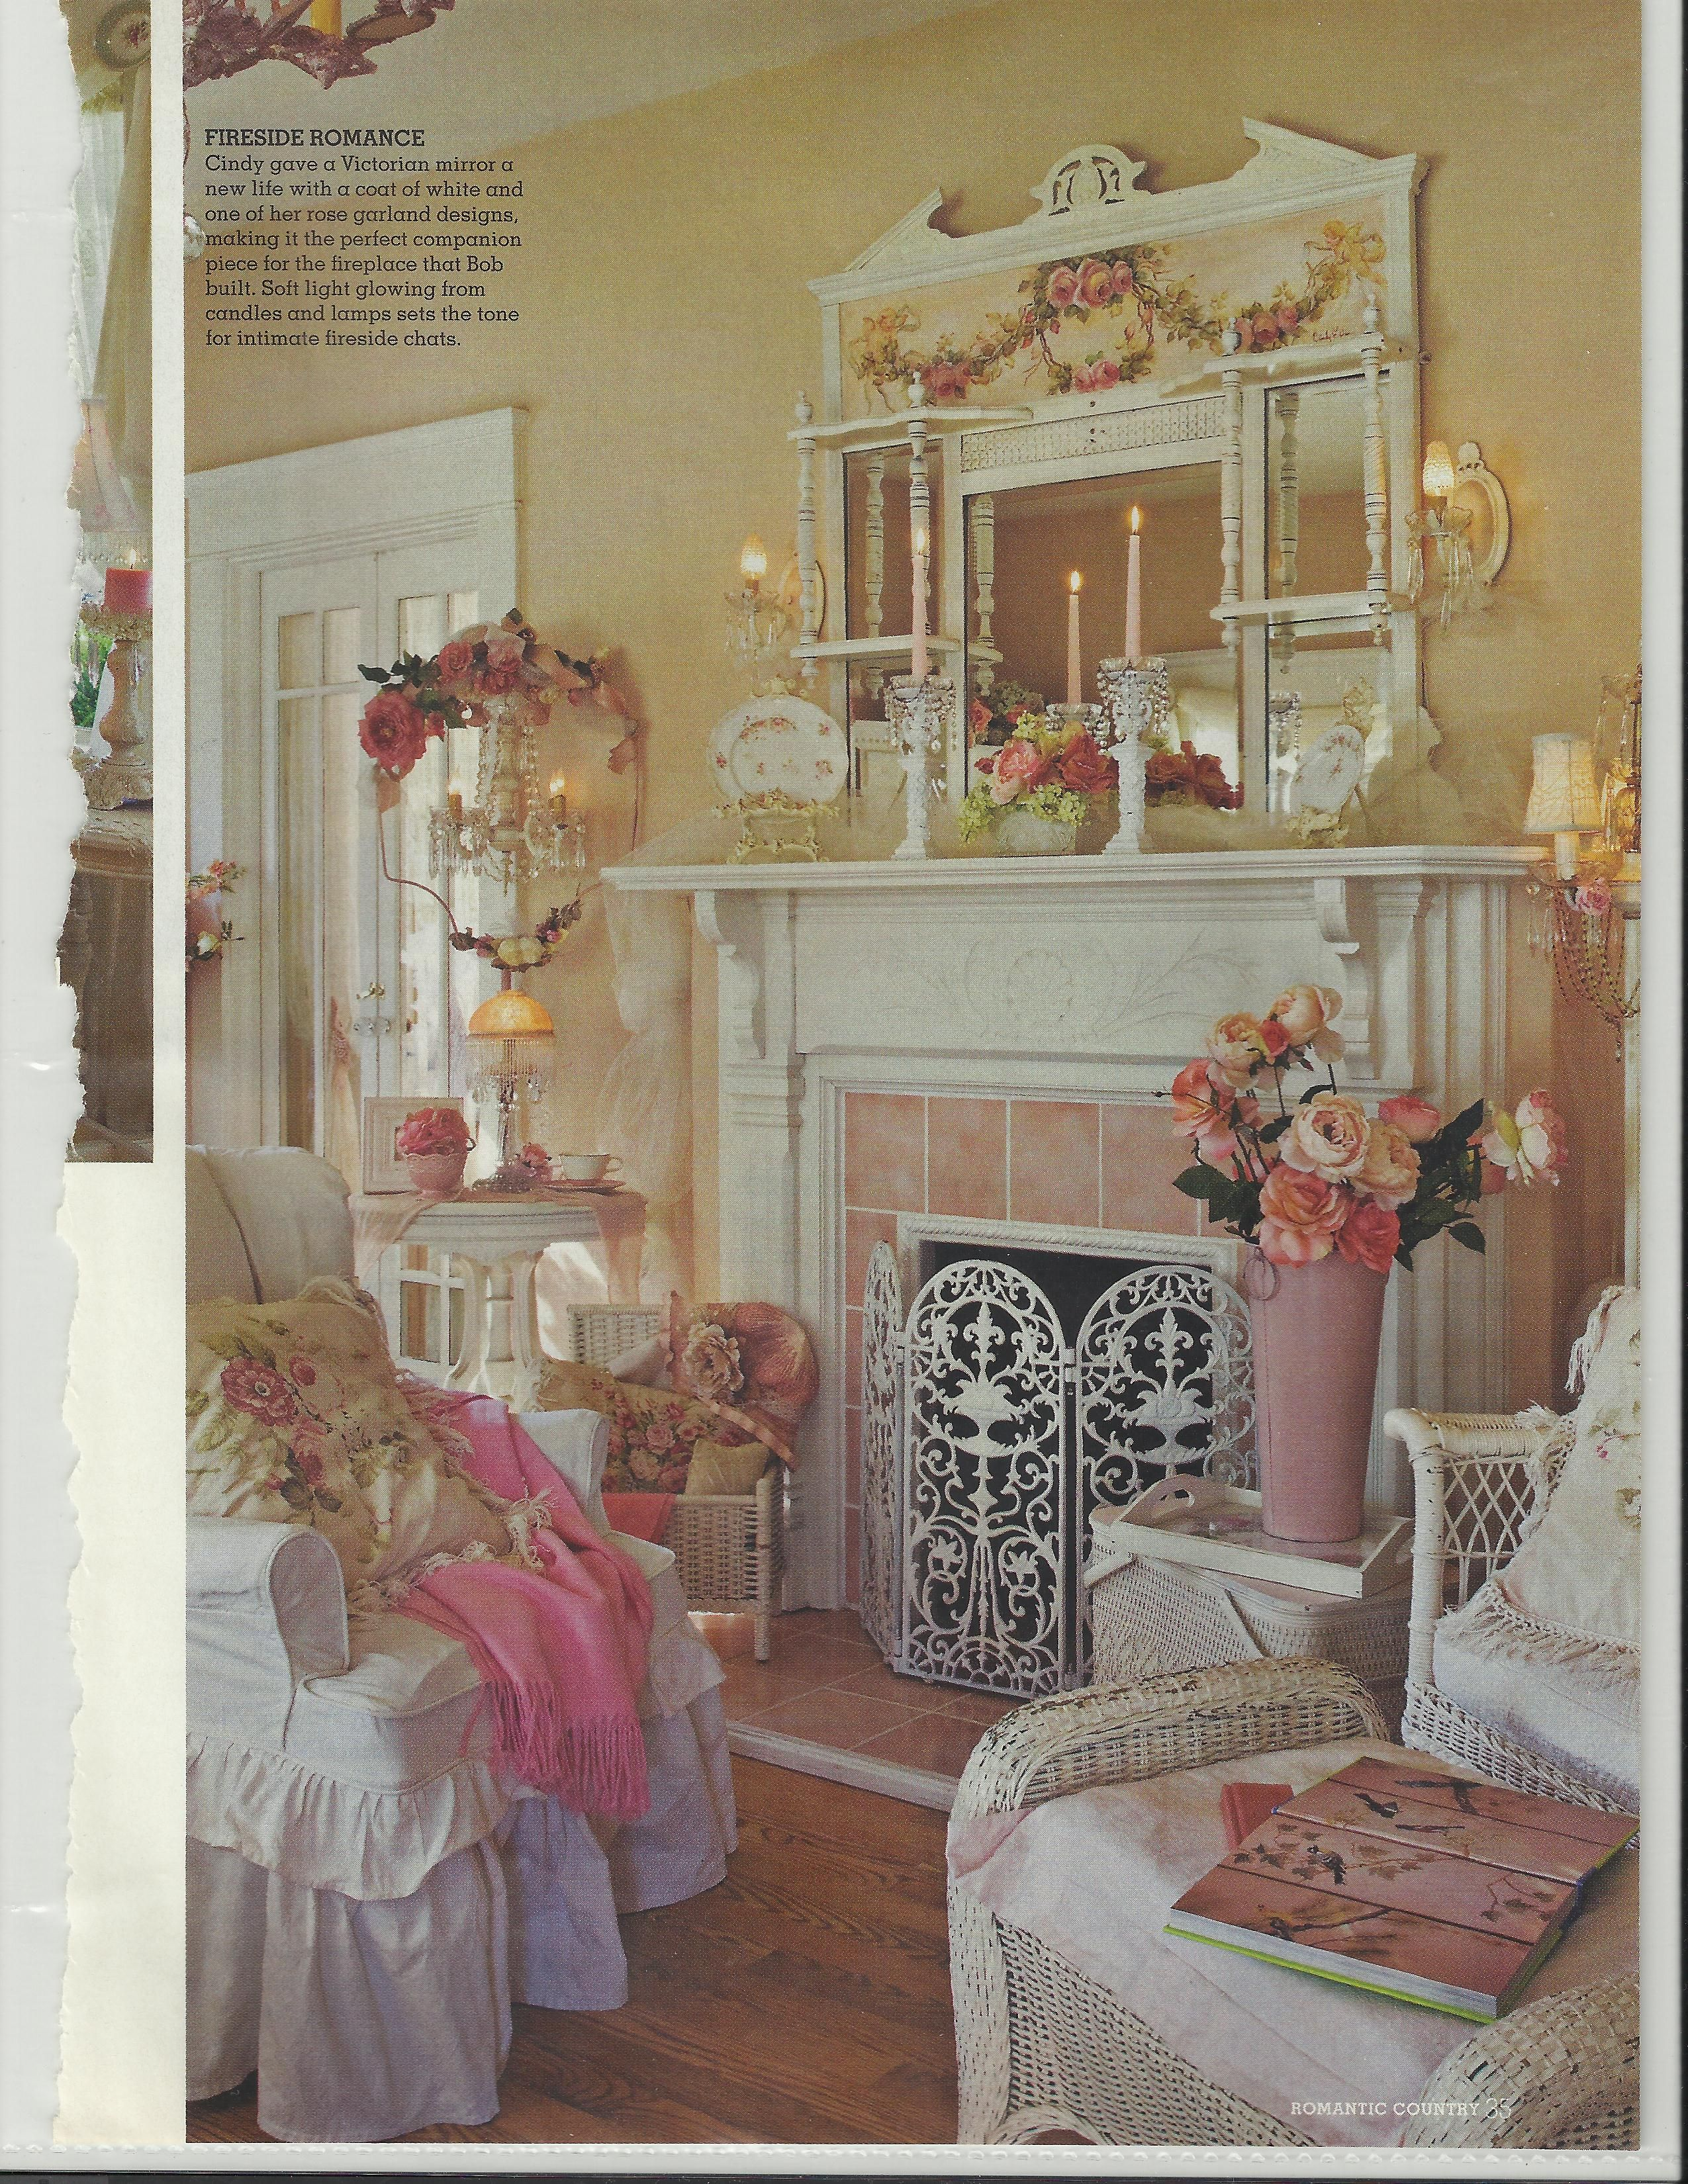 Bob  Cindy Elliss lovely home featured in Romantic